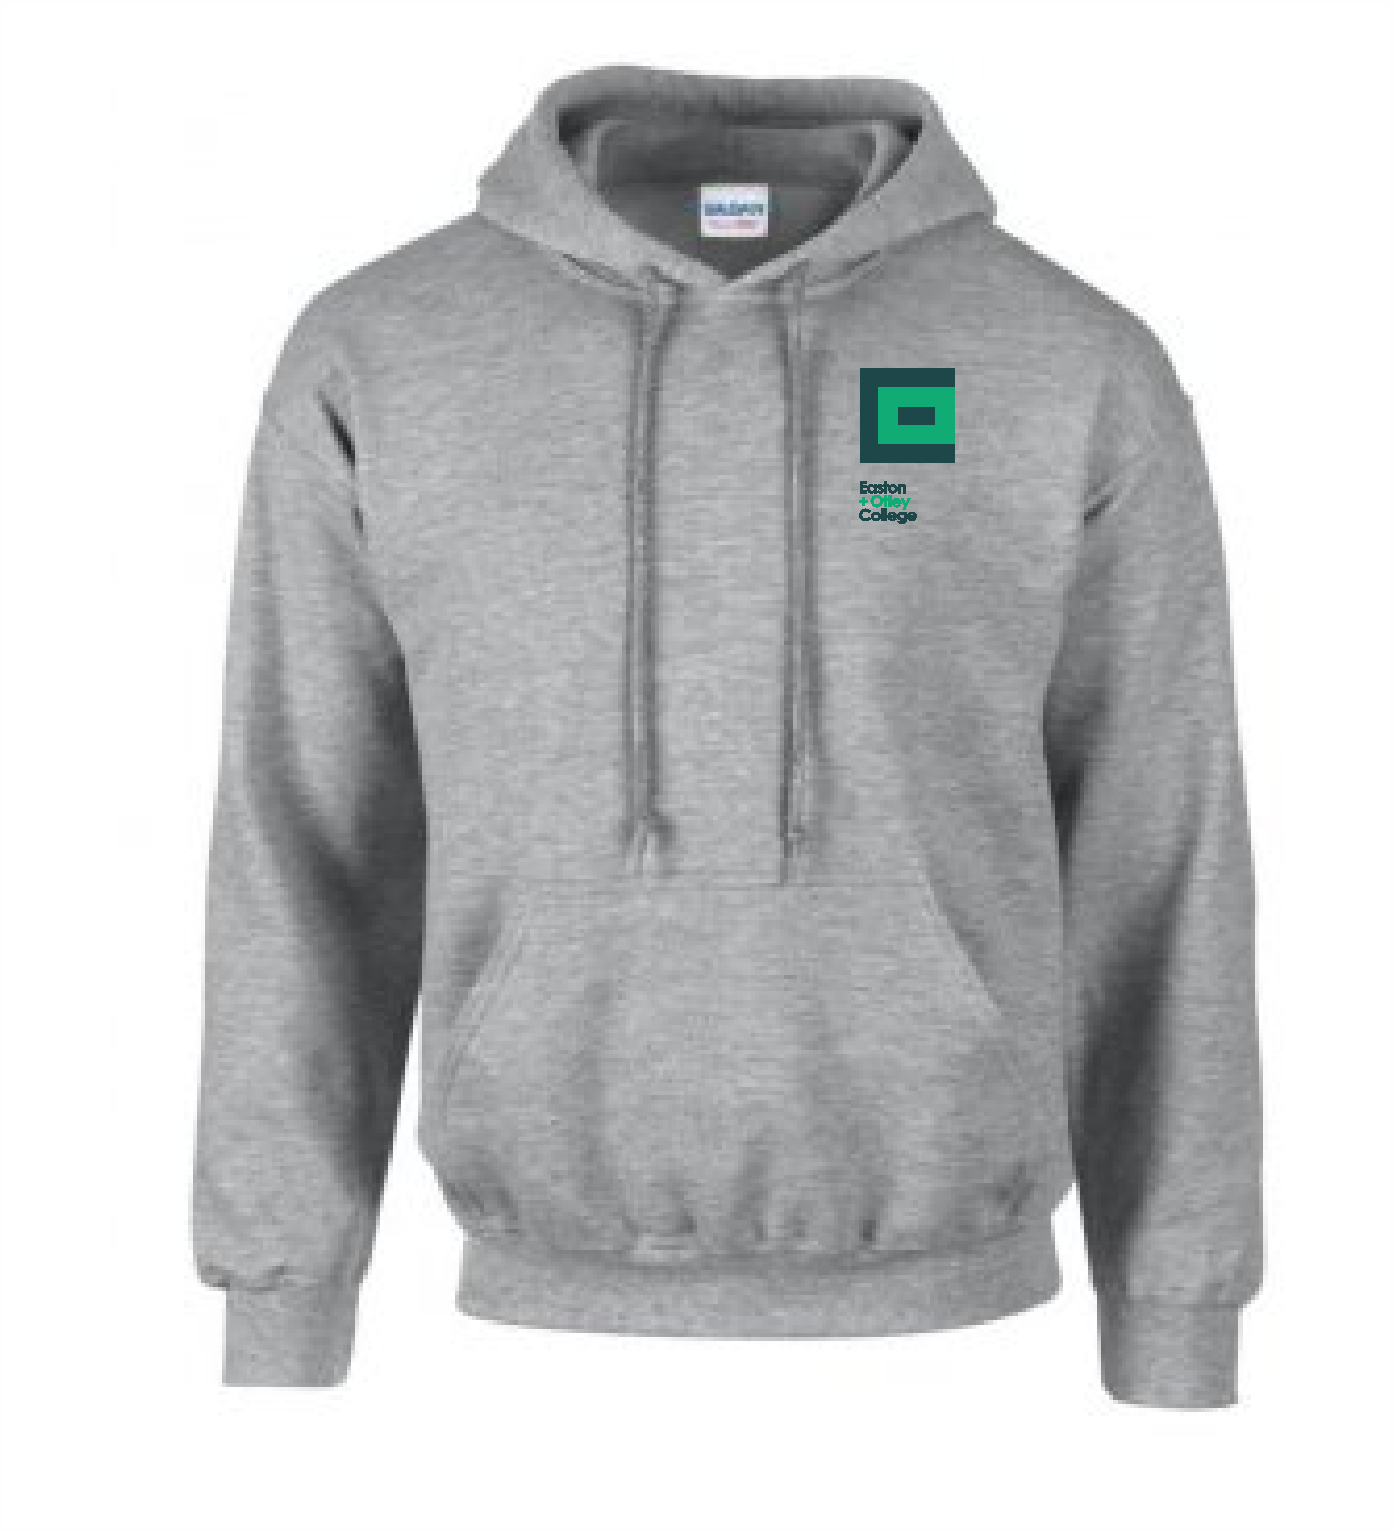 Easton Construction Hoody